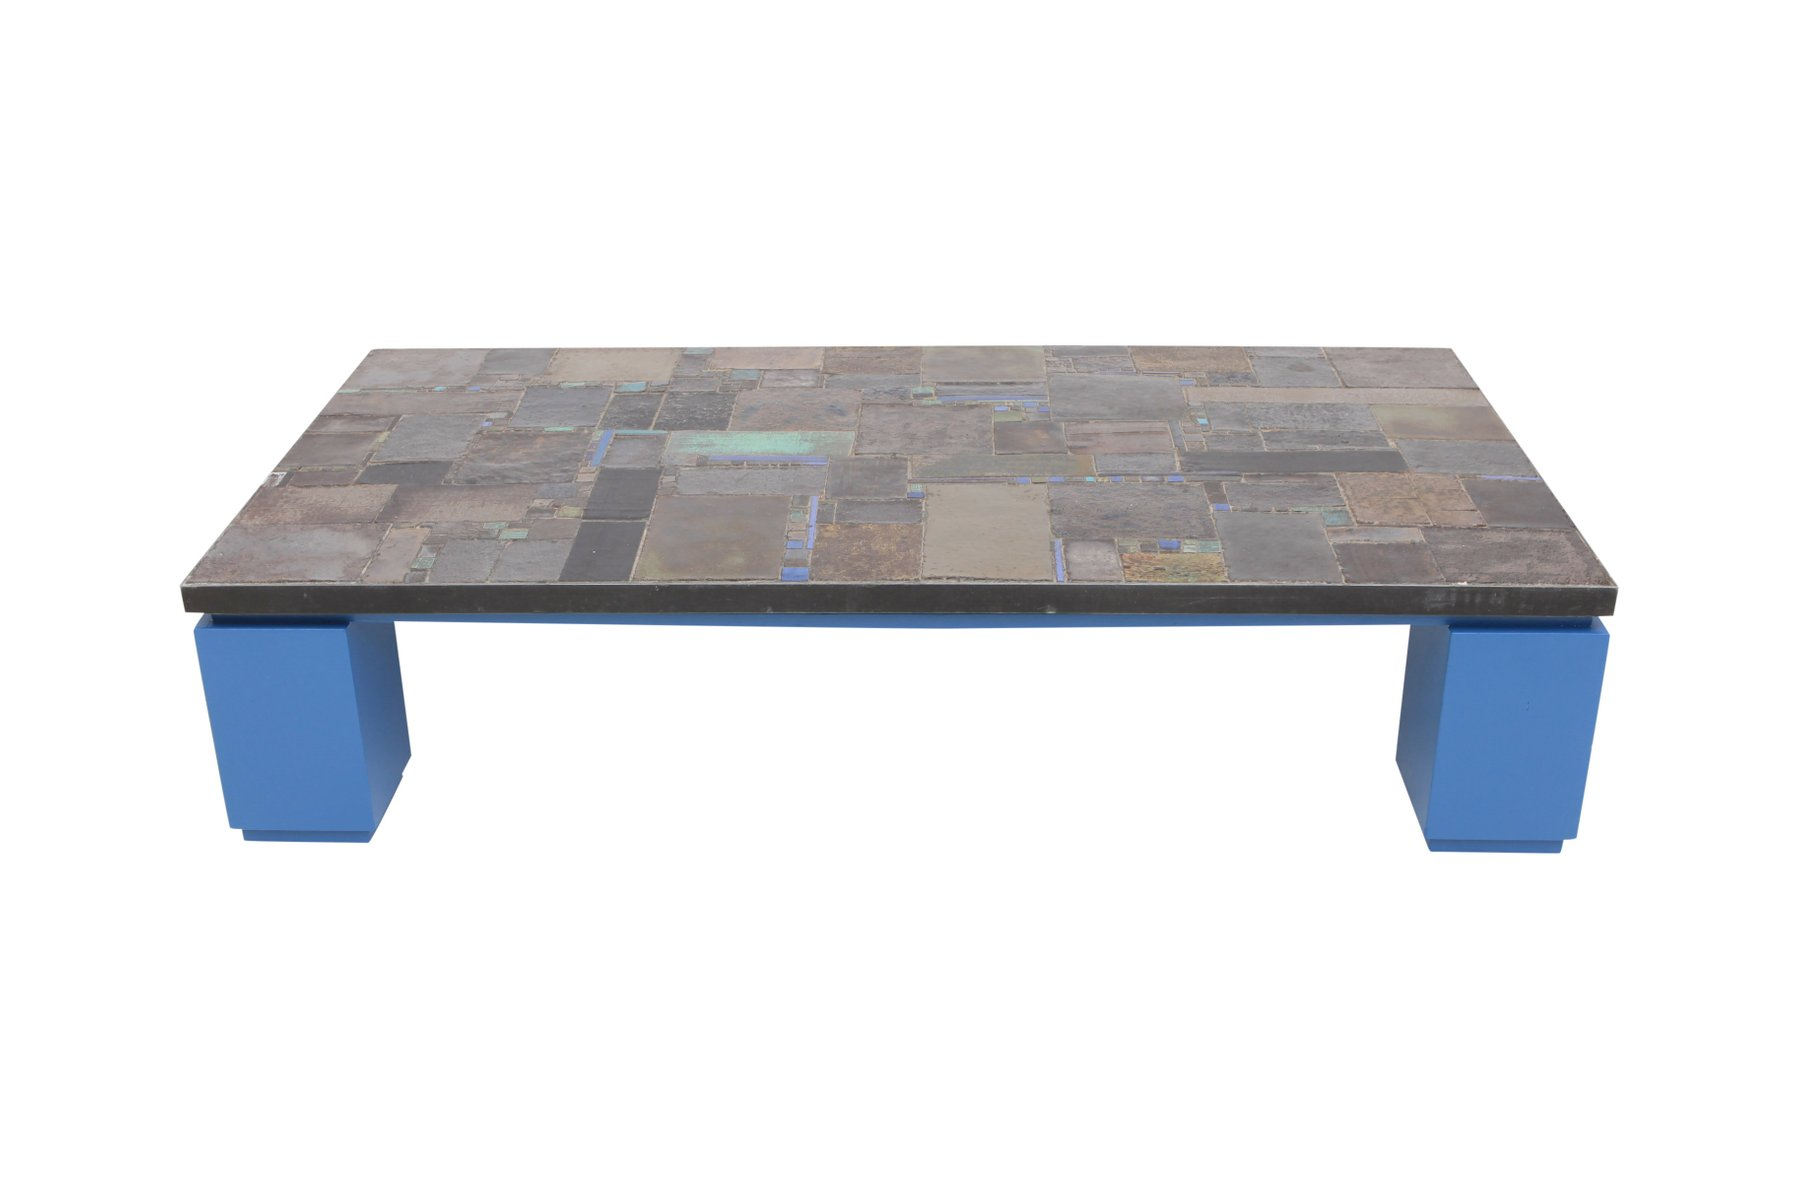 Ceramic tile coffee table from pia manu for sale at pamono dailygadgetfo Gallery